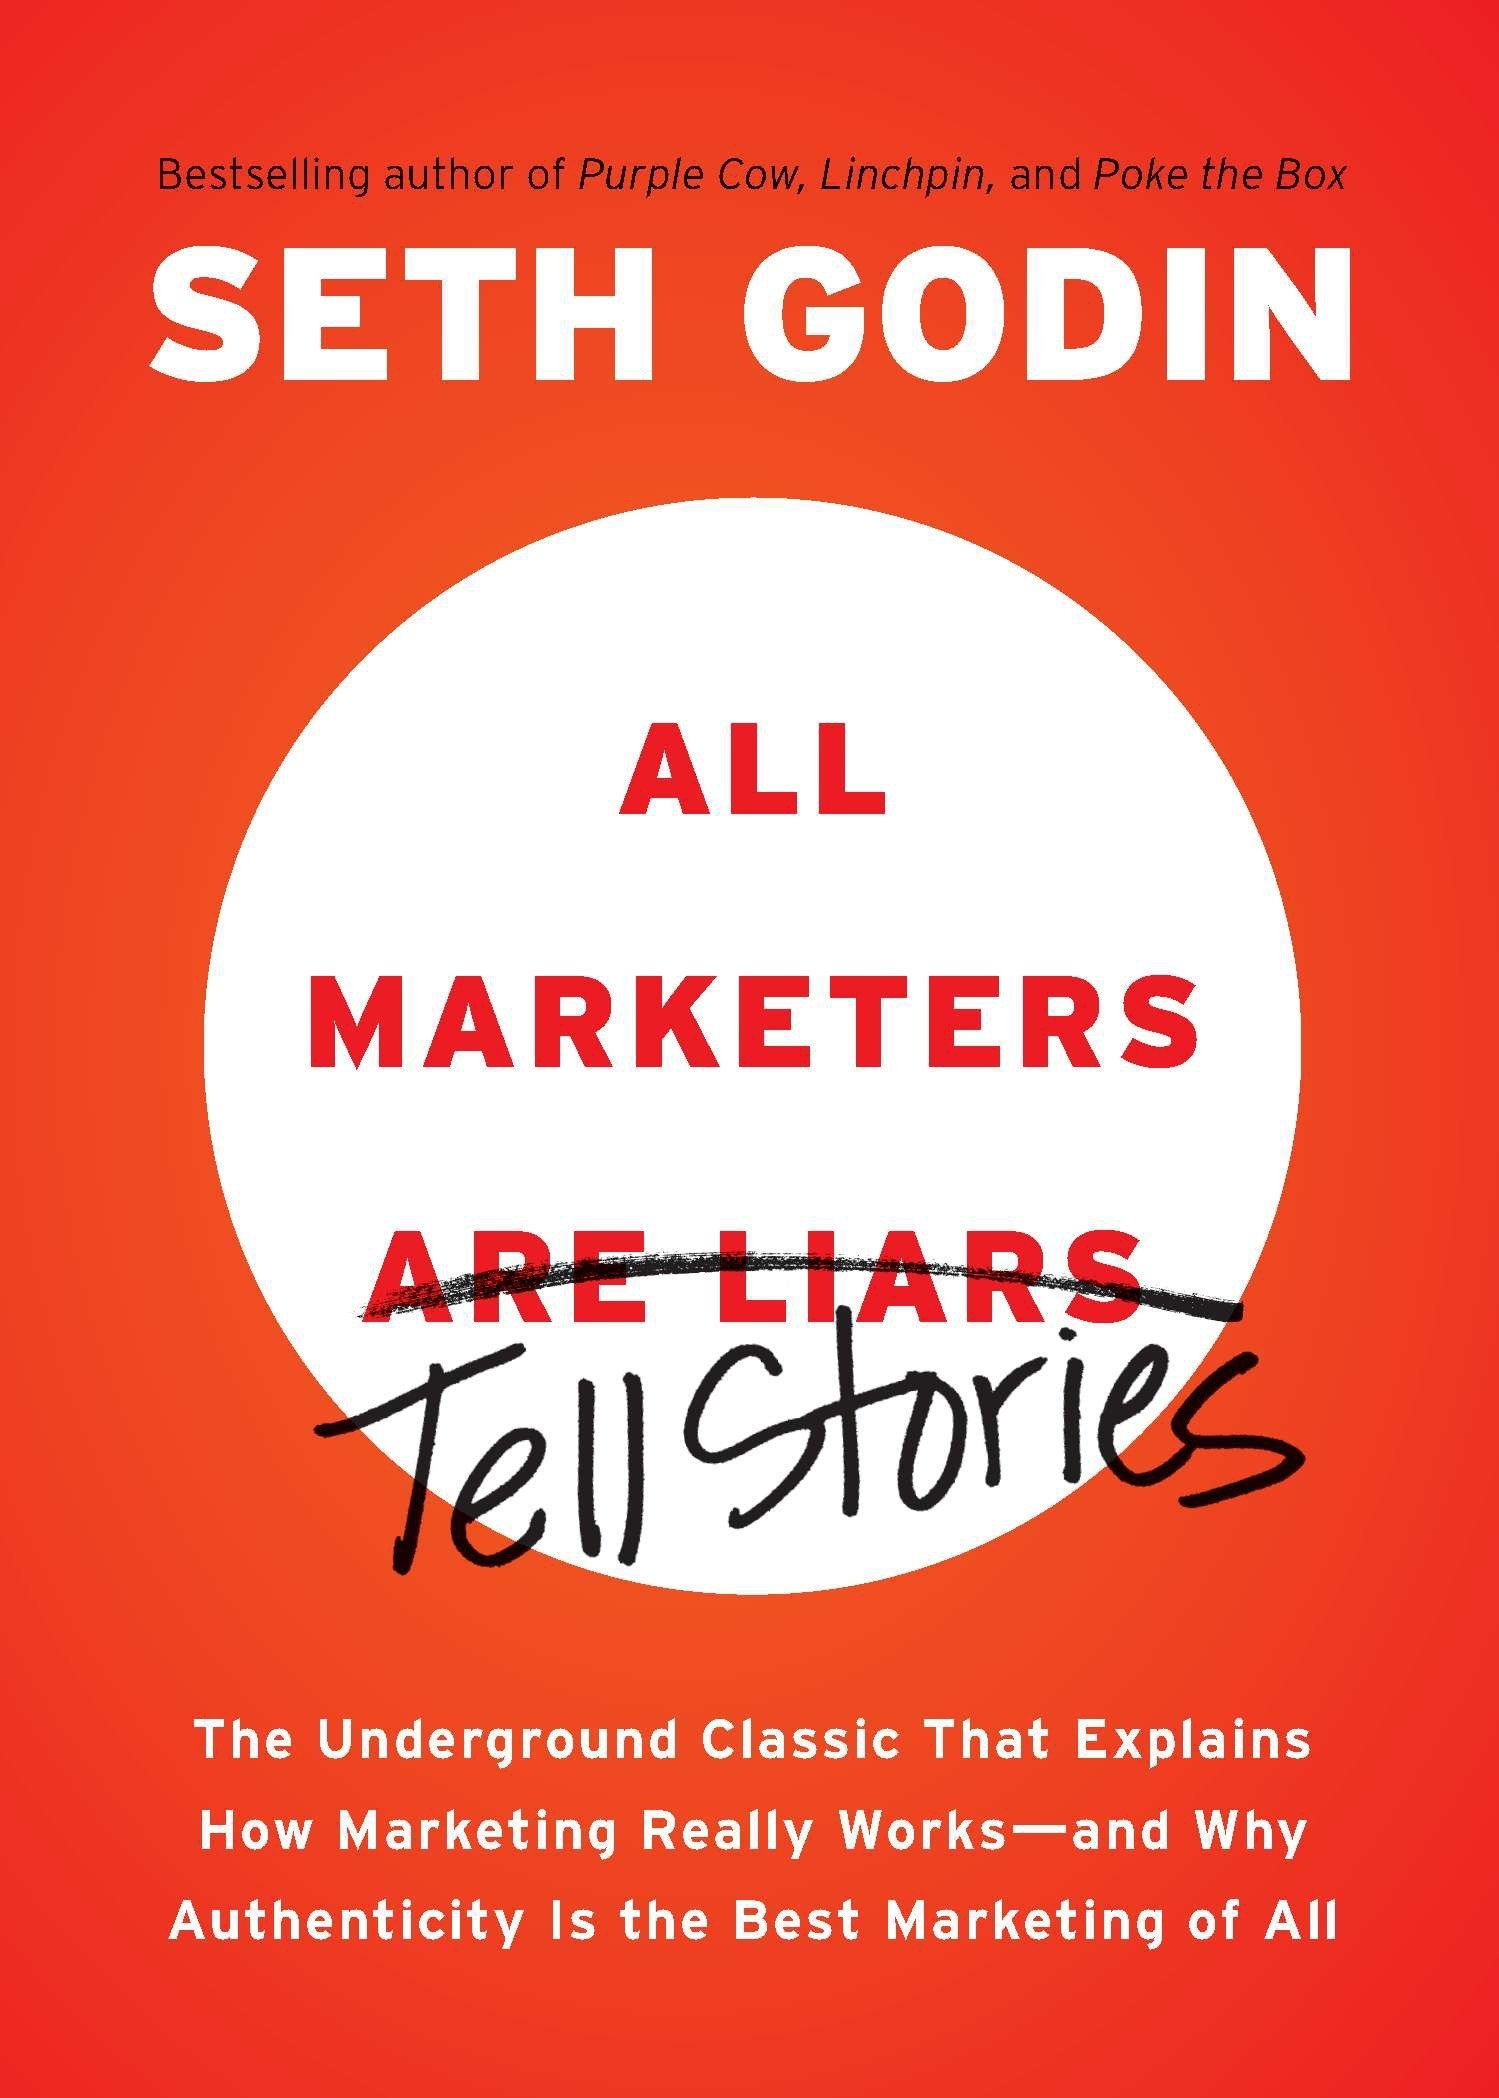 All Marketers Are Liars: The Power of Telling Authentic Stories in a Low-Trust World - Seth Godin - reviews for audiobook - reviews, quotes, summary